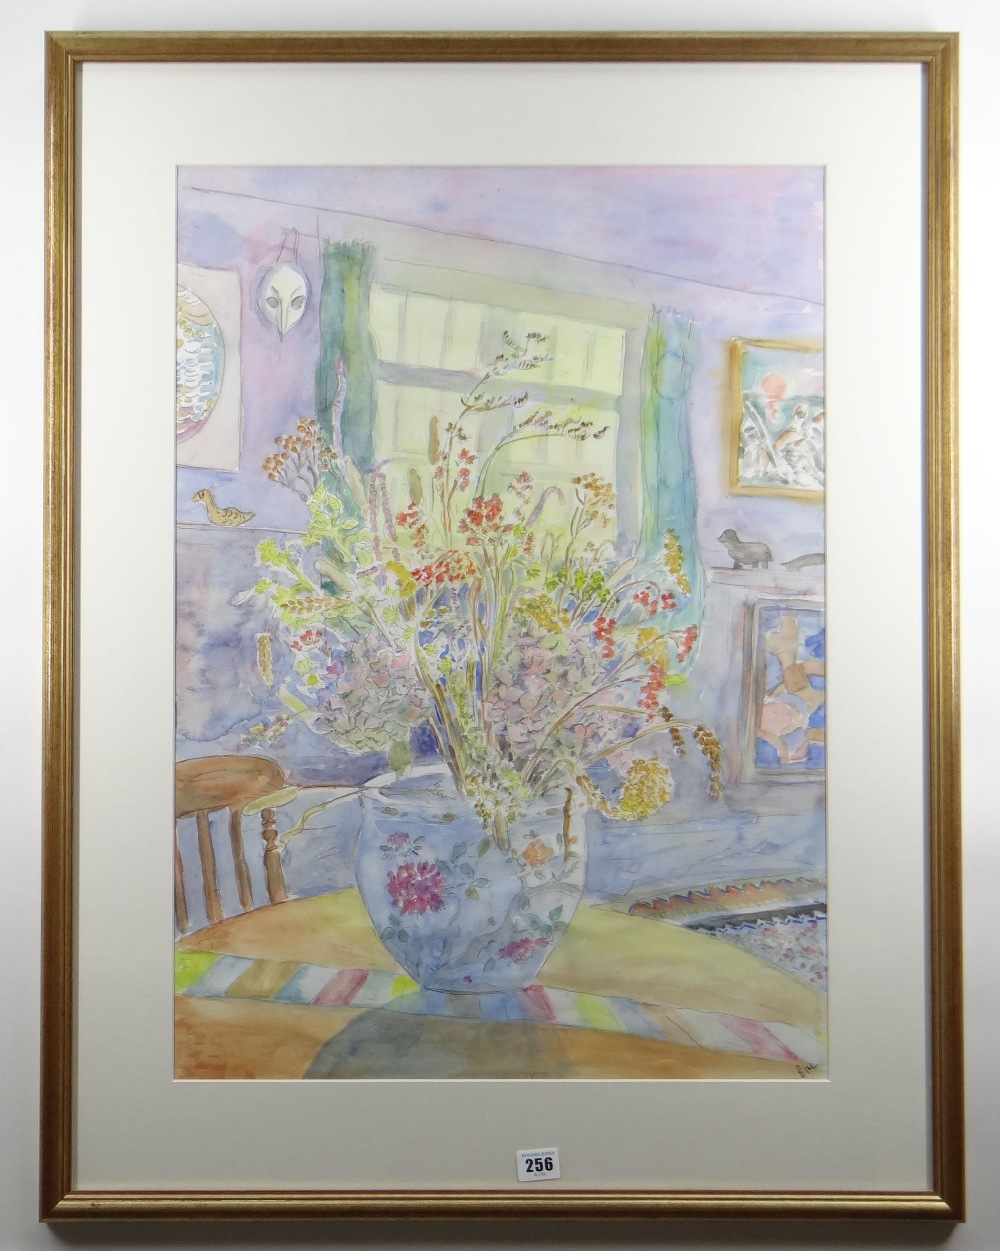 BIM GIARDELLI watercolour - interior scene with jardiniere of flowers on a table, signed, 69 x 48cms - Image 2 of 2